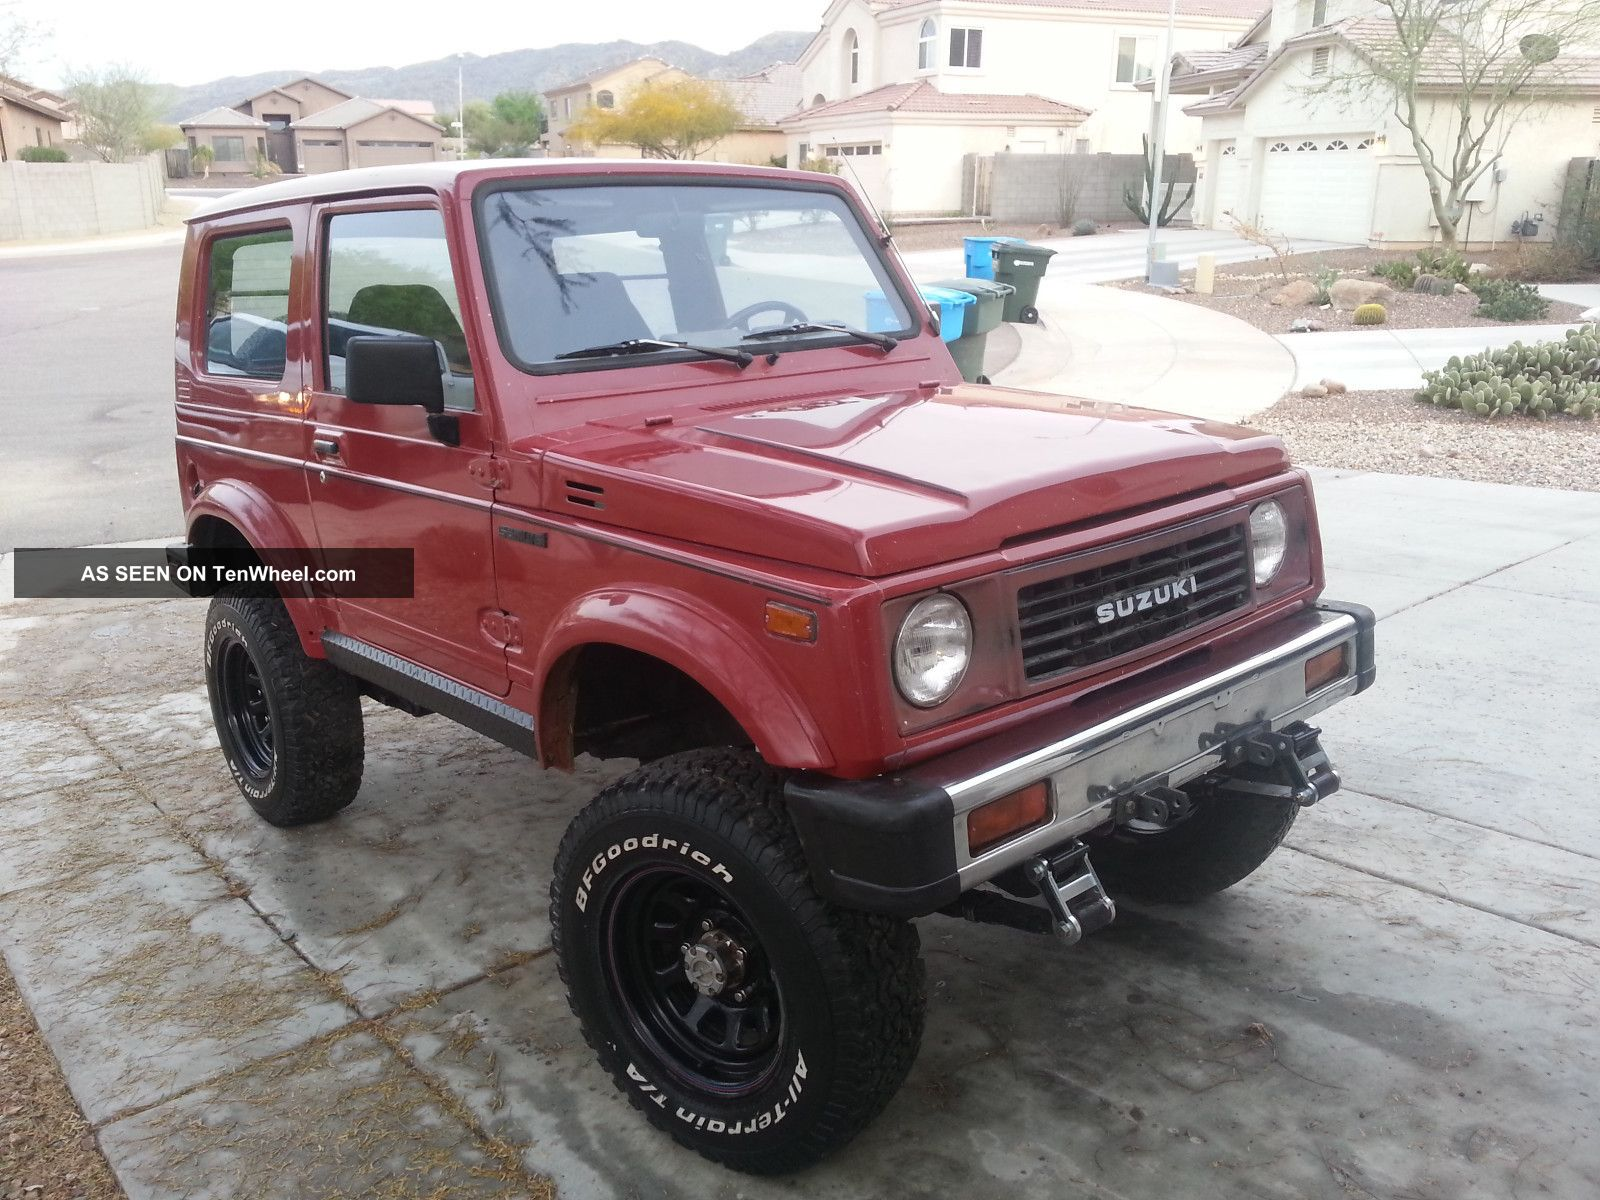 Suzuki Samurai Owners Manual